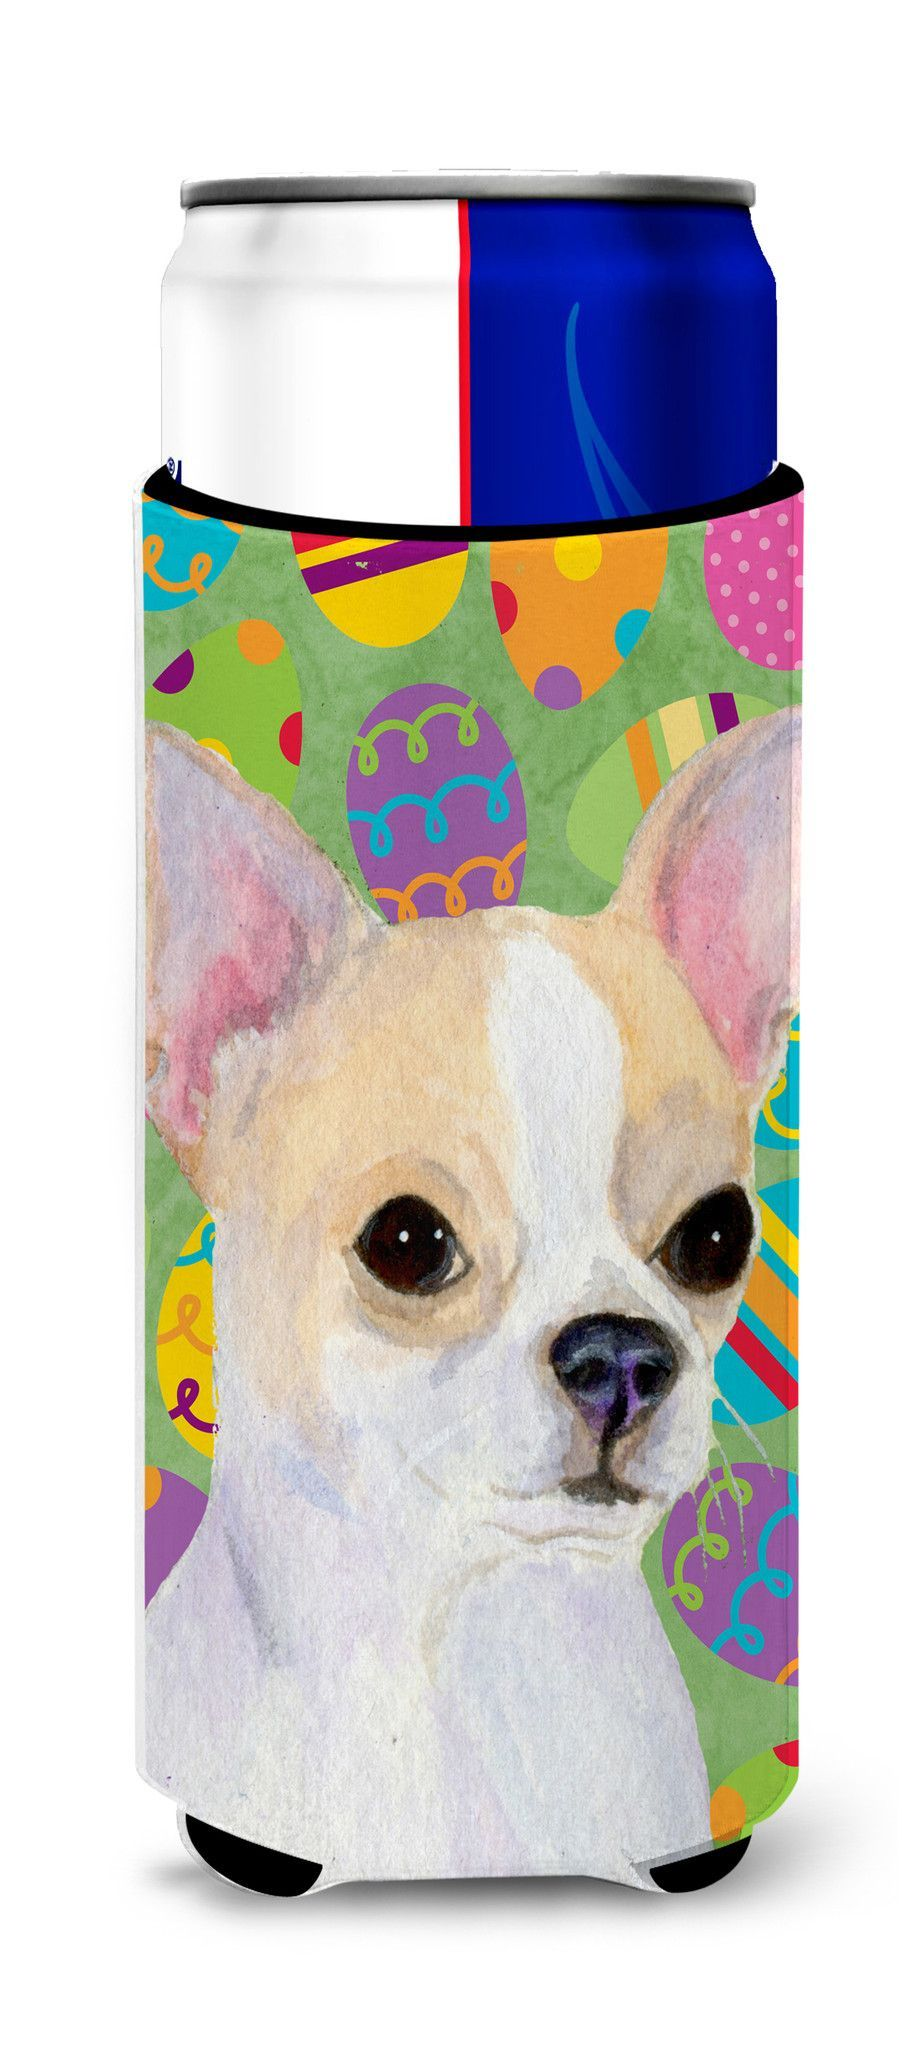 Chihuahua Easter Eggtravaganza Ultra Beverage Insulators for slim cans SS4819MUK